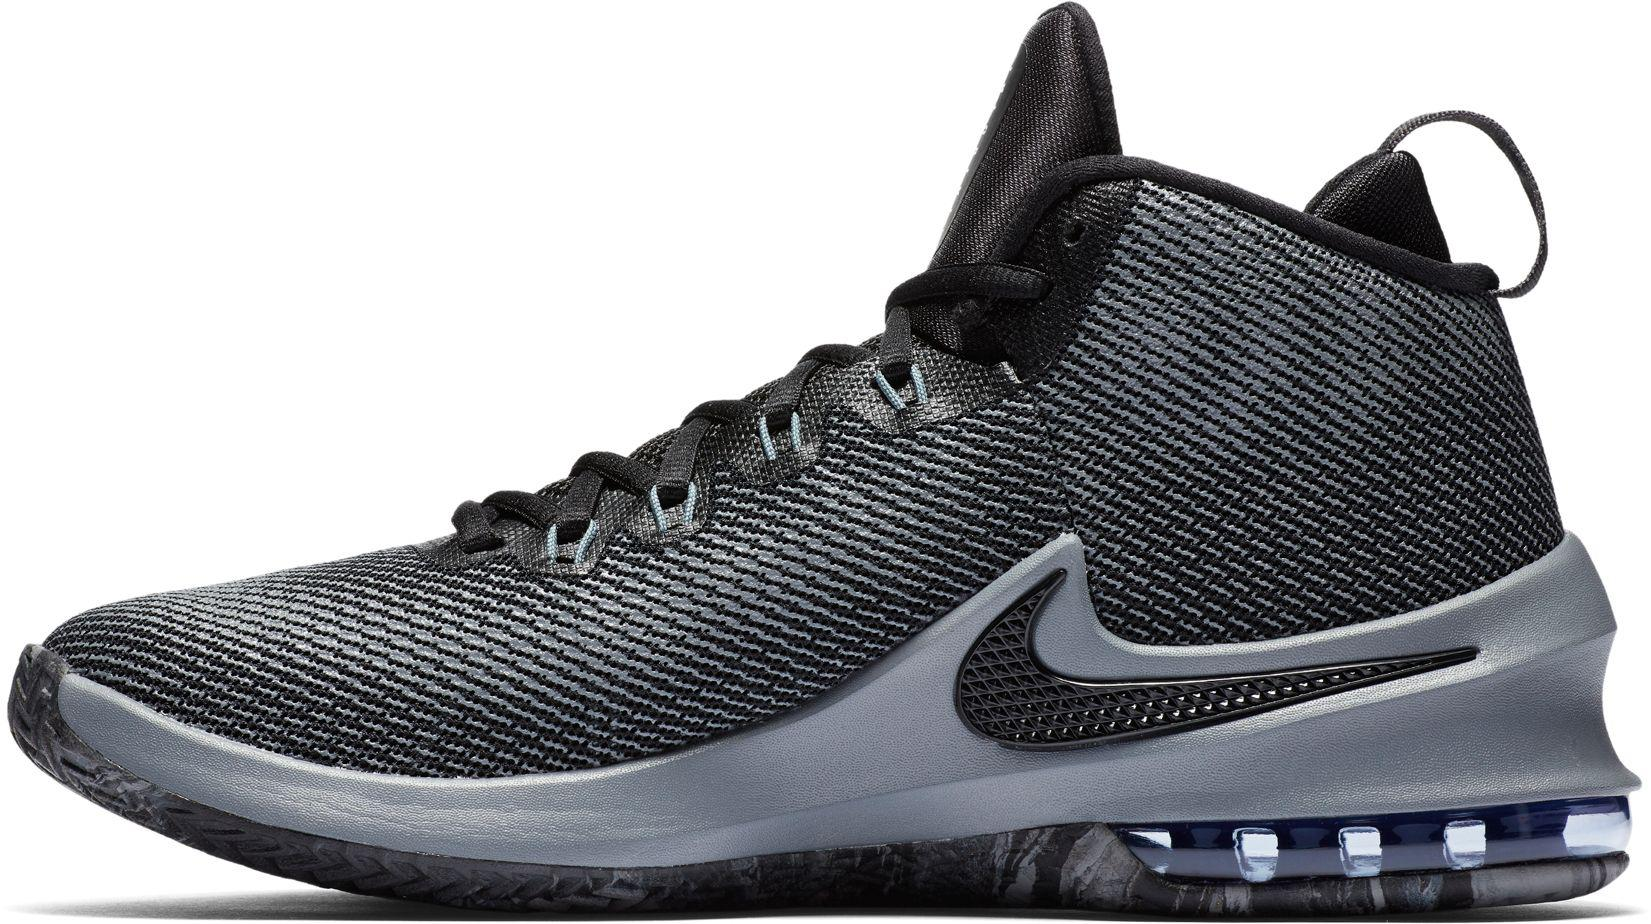 finest selection 2aad2 155b4 Nike - Black Air Max Infuriate Mid Premium Basketball Shoes for Men - Lyst